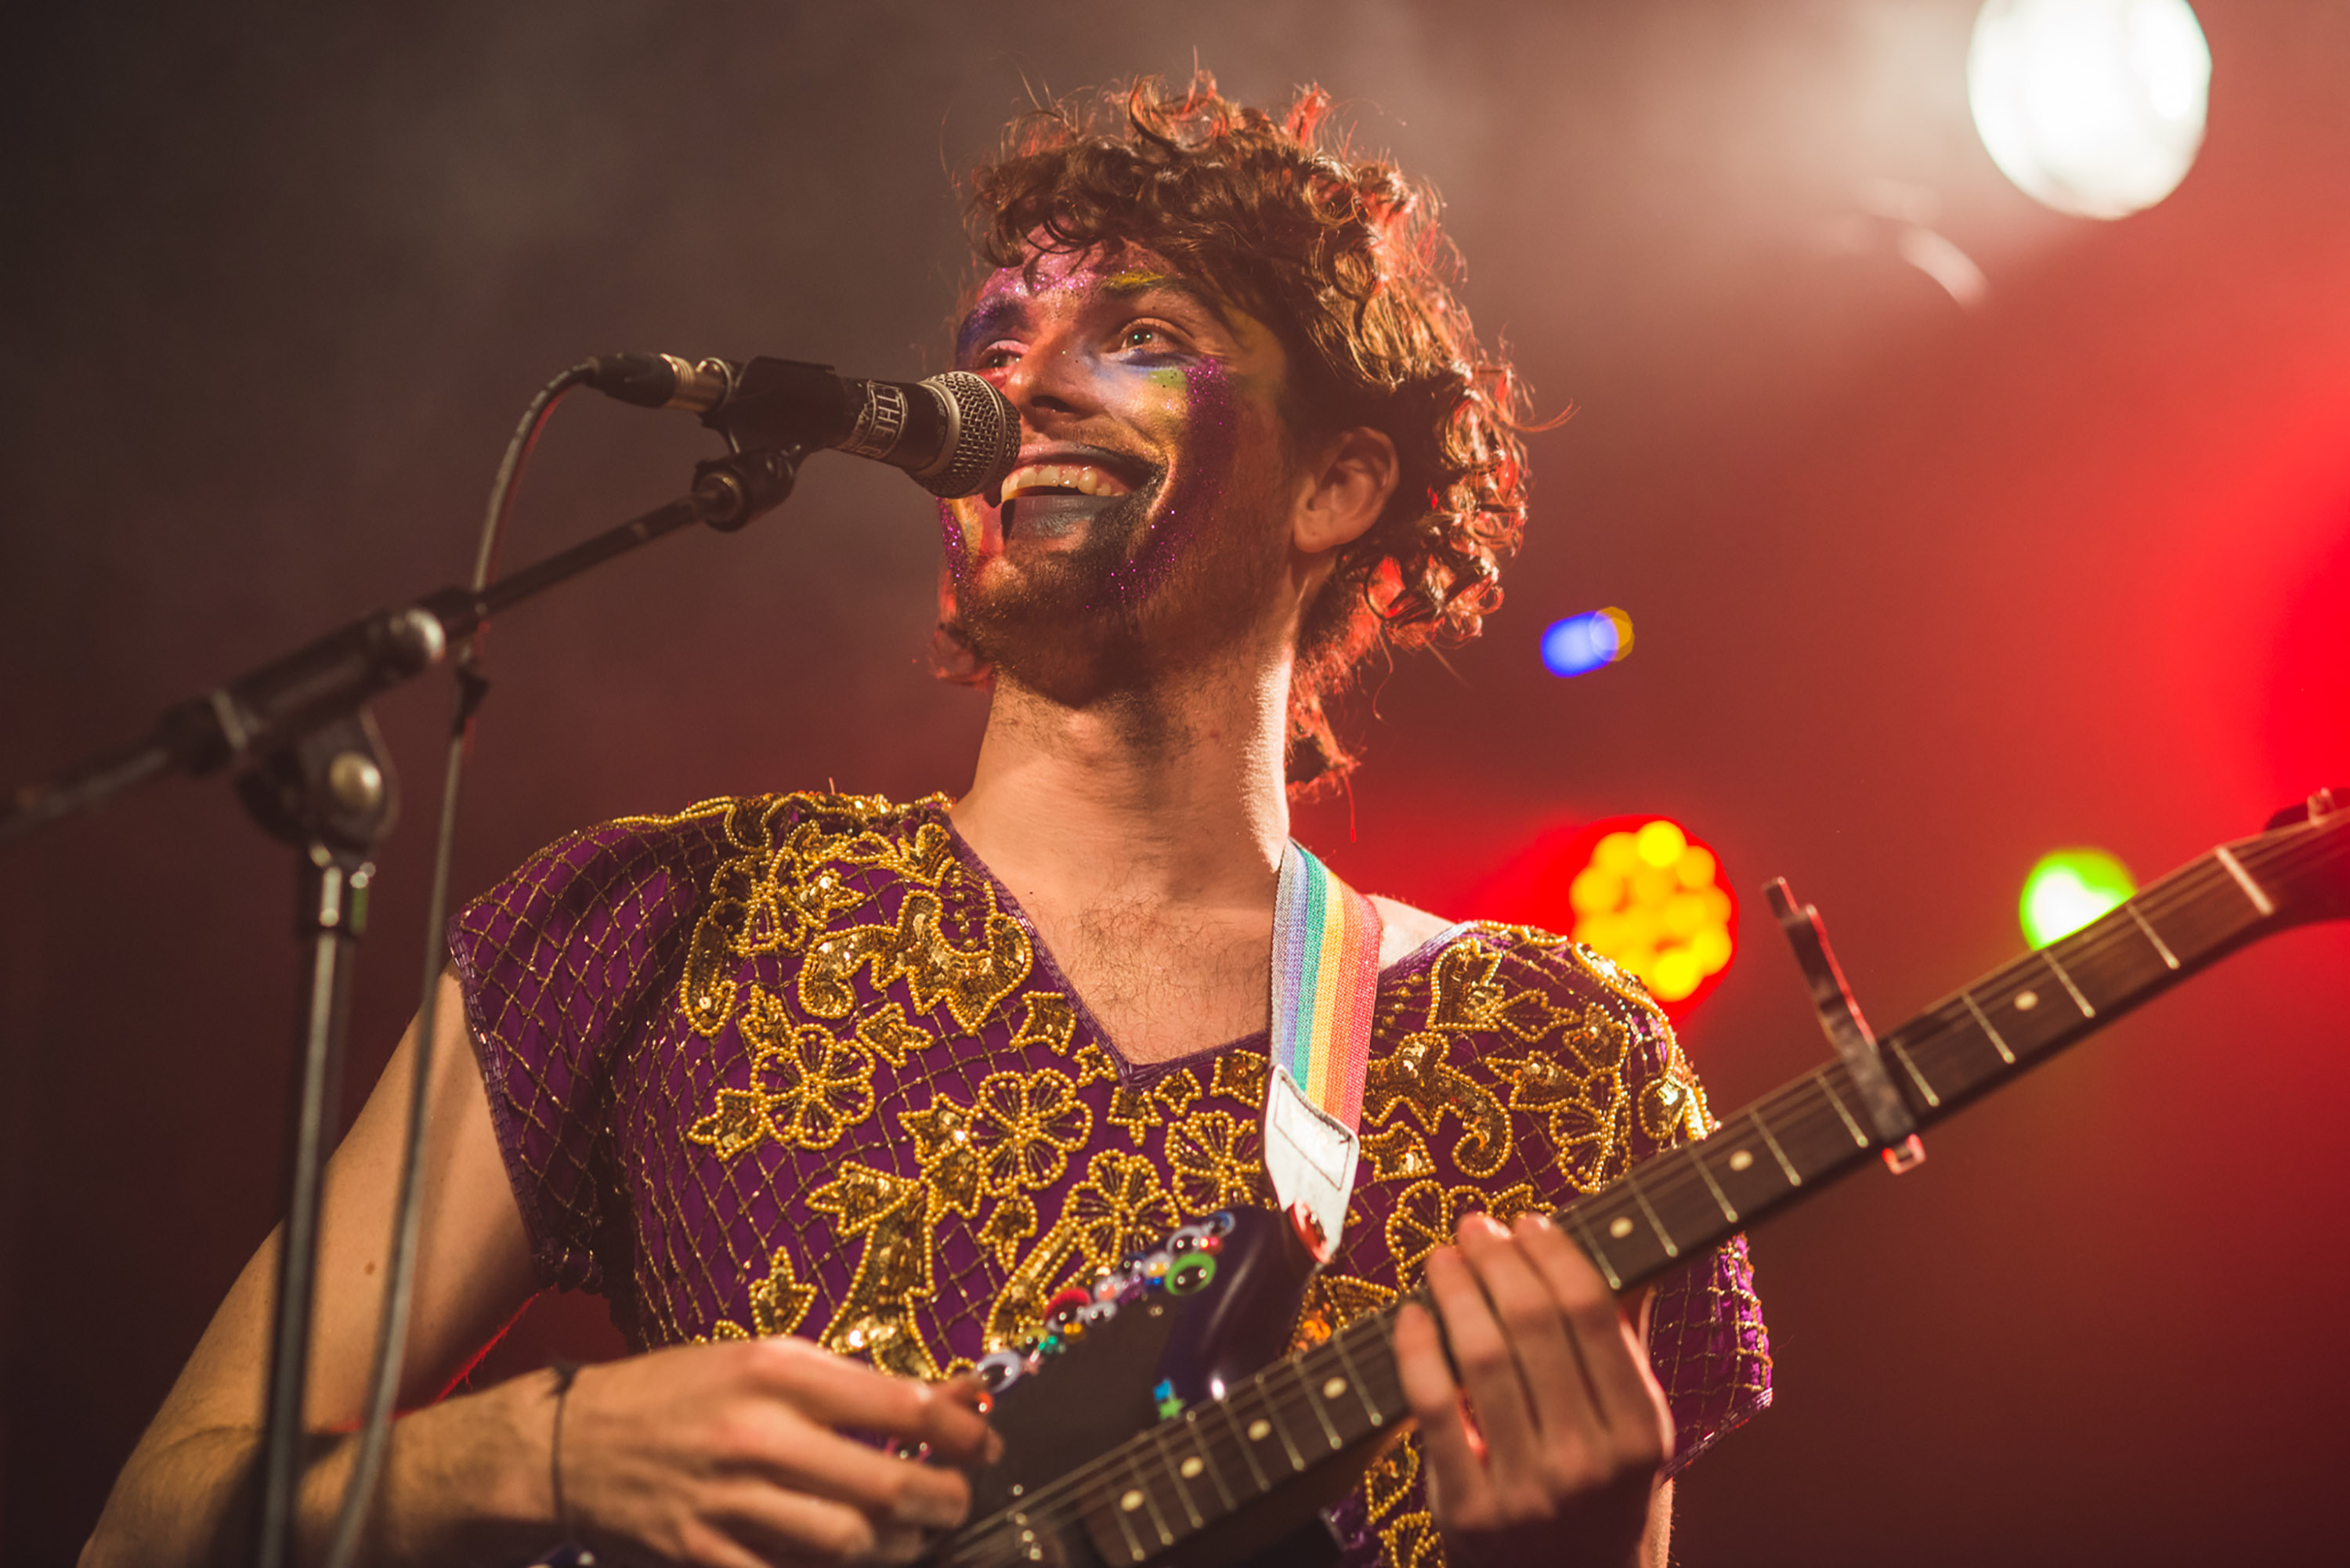 PWR BTTM, The Garage, London